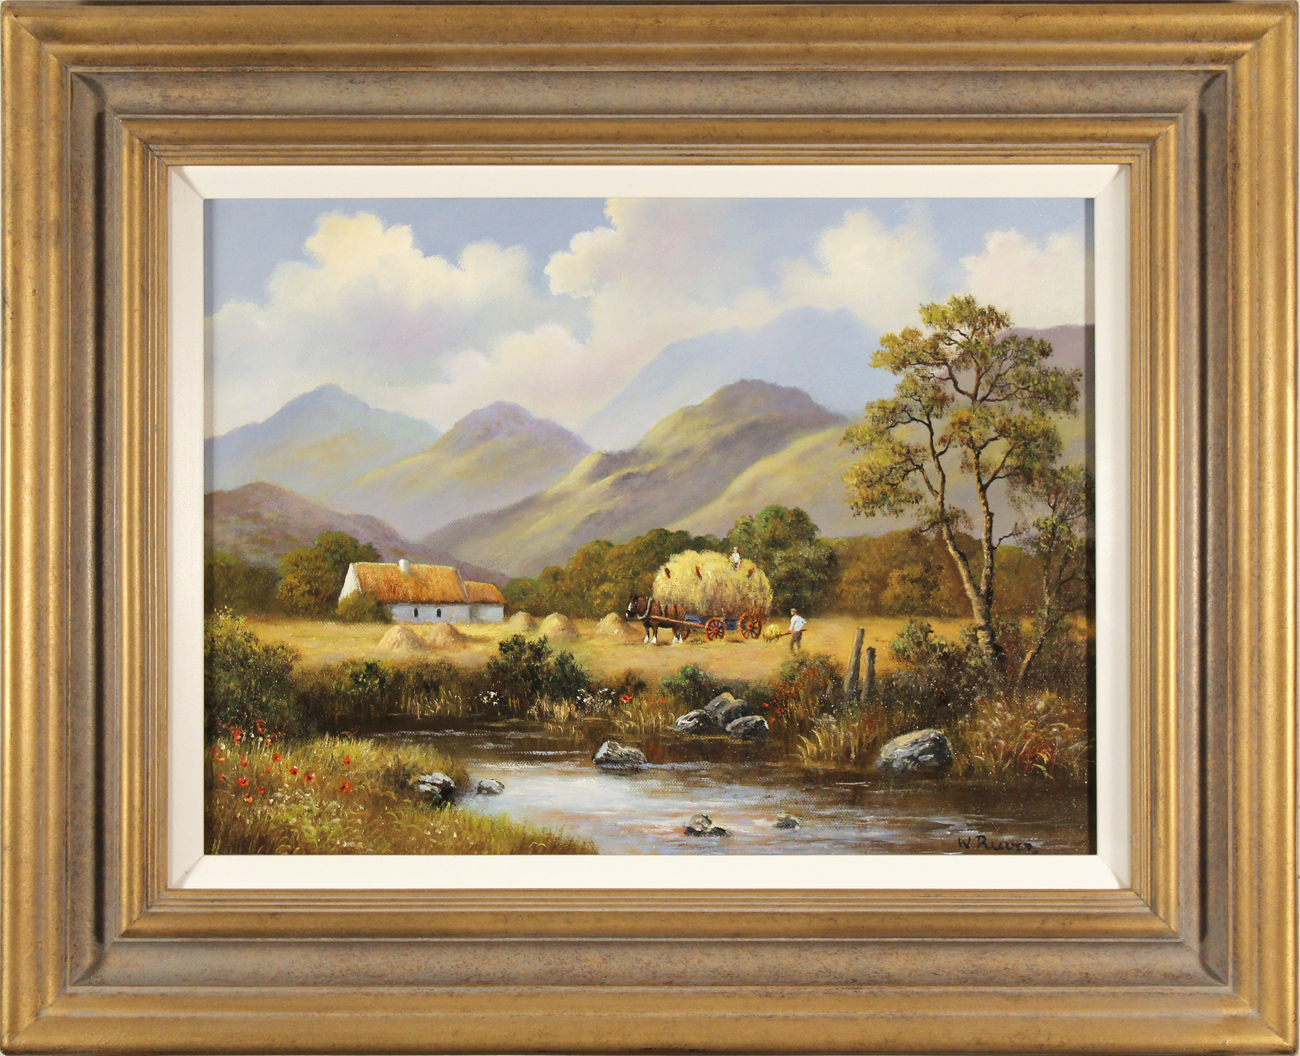 Wendy Reeves, Original oil painting on canvas, Haymaking, click to enlarge